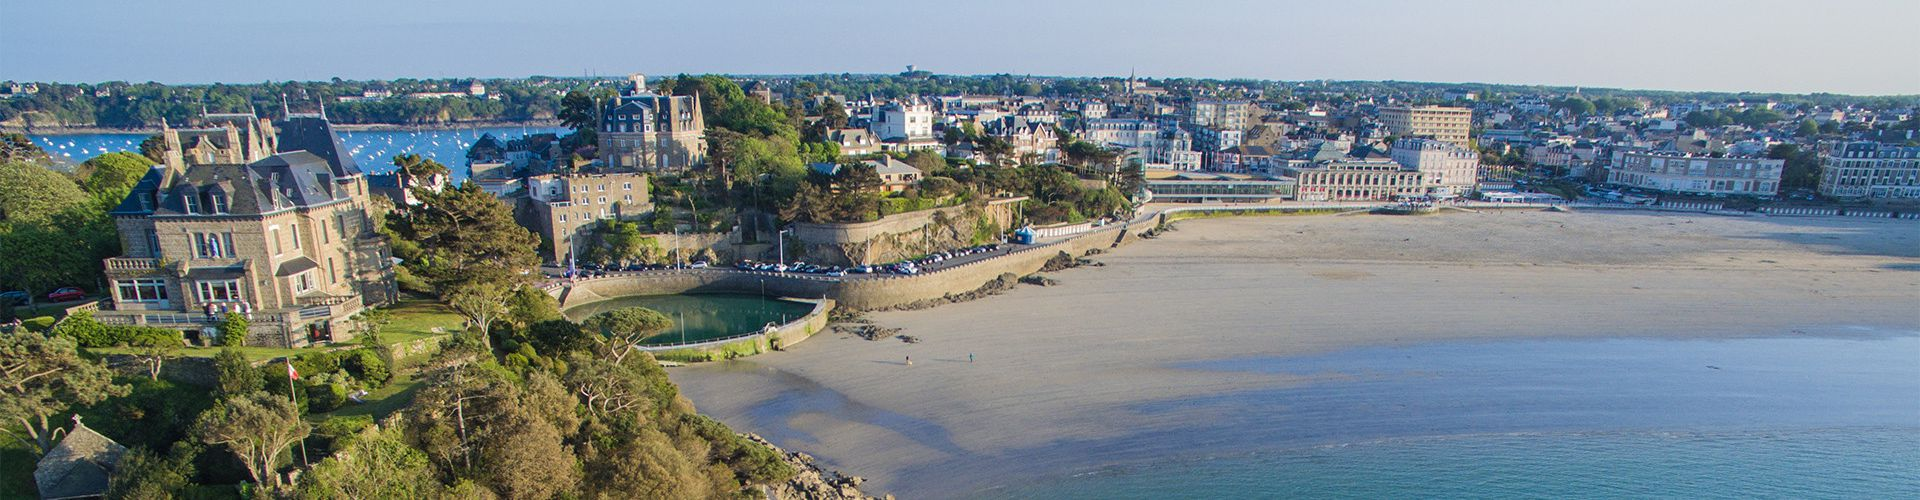 Buy sales property seaside Saint Lunaire Saint Briac Lancieux Saint Malo Côte d'Emeraude